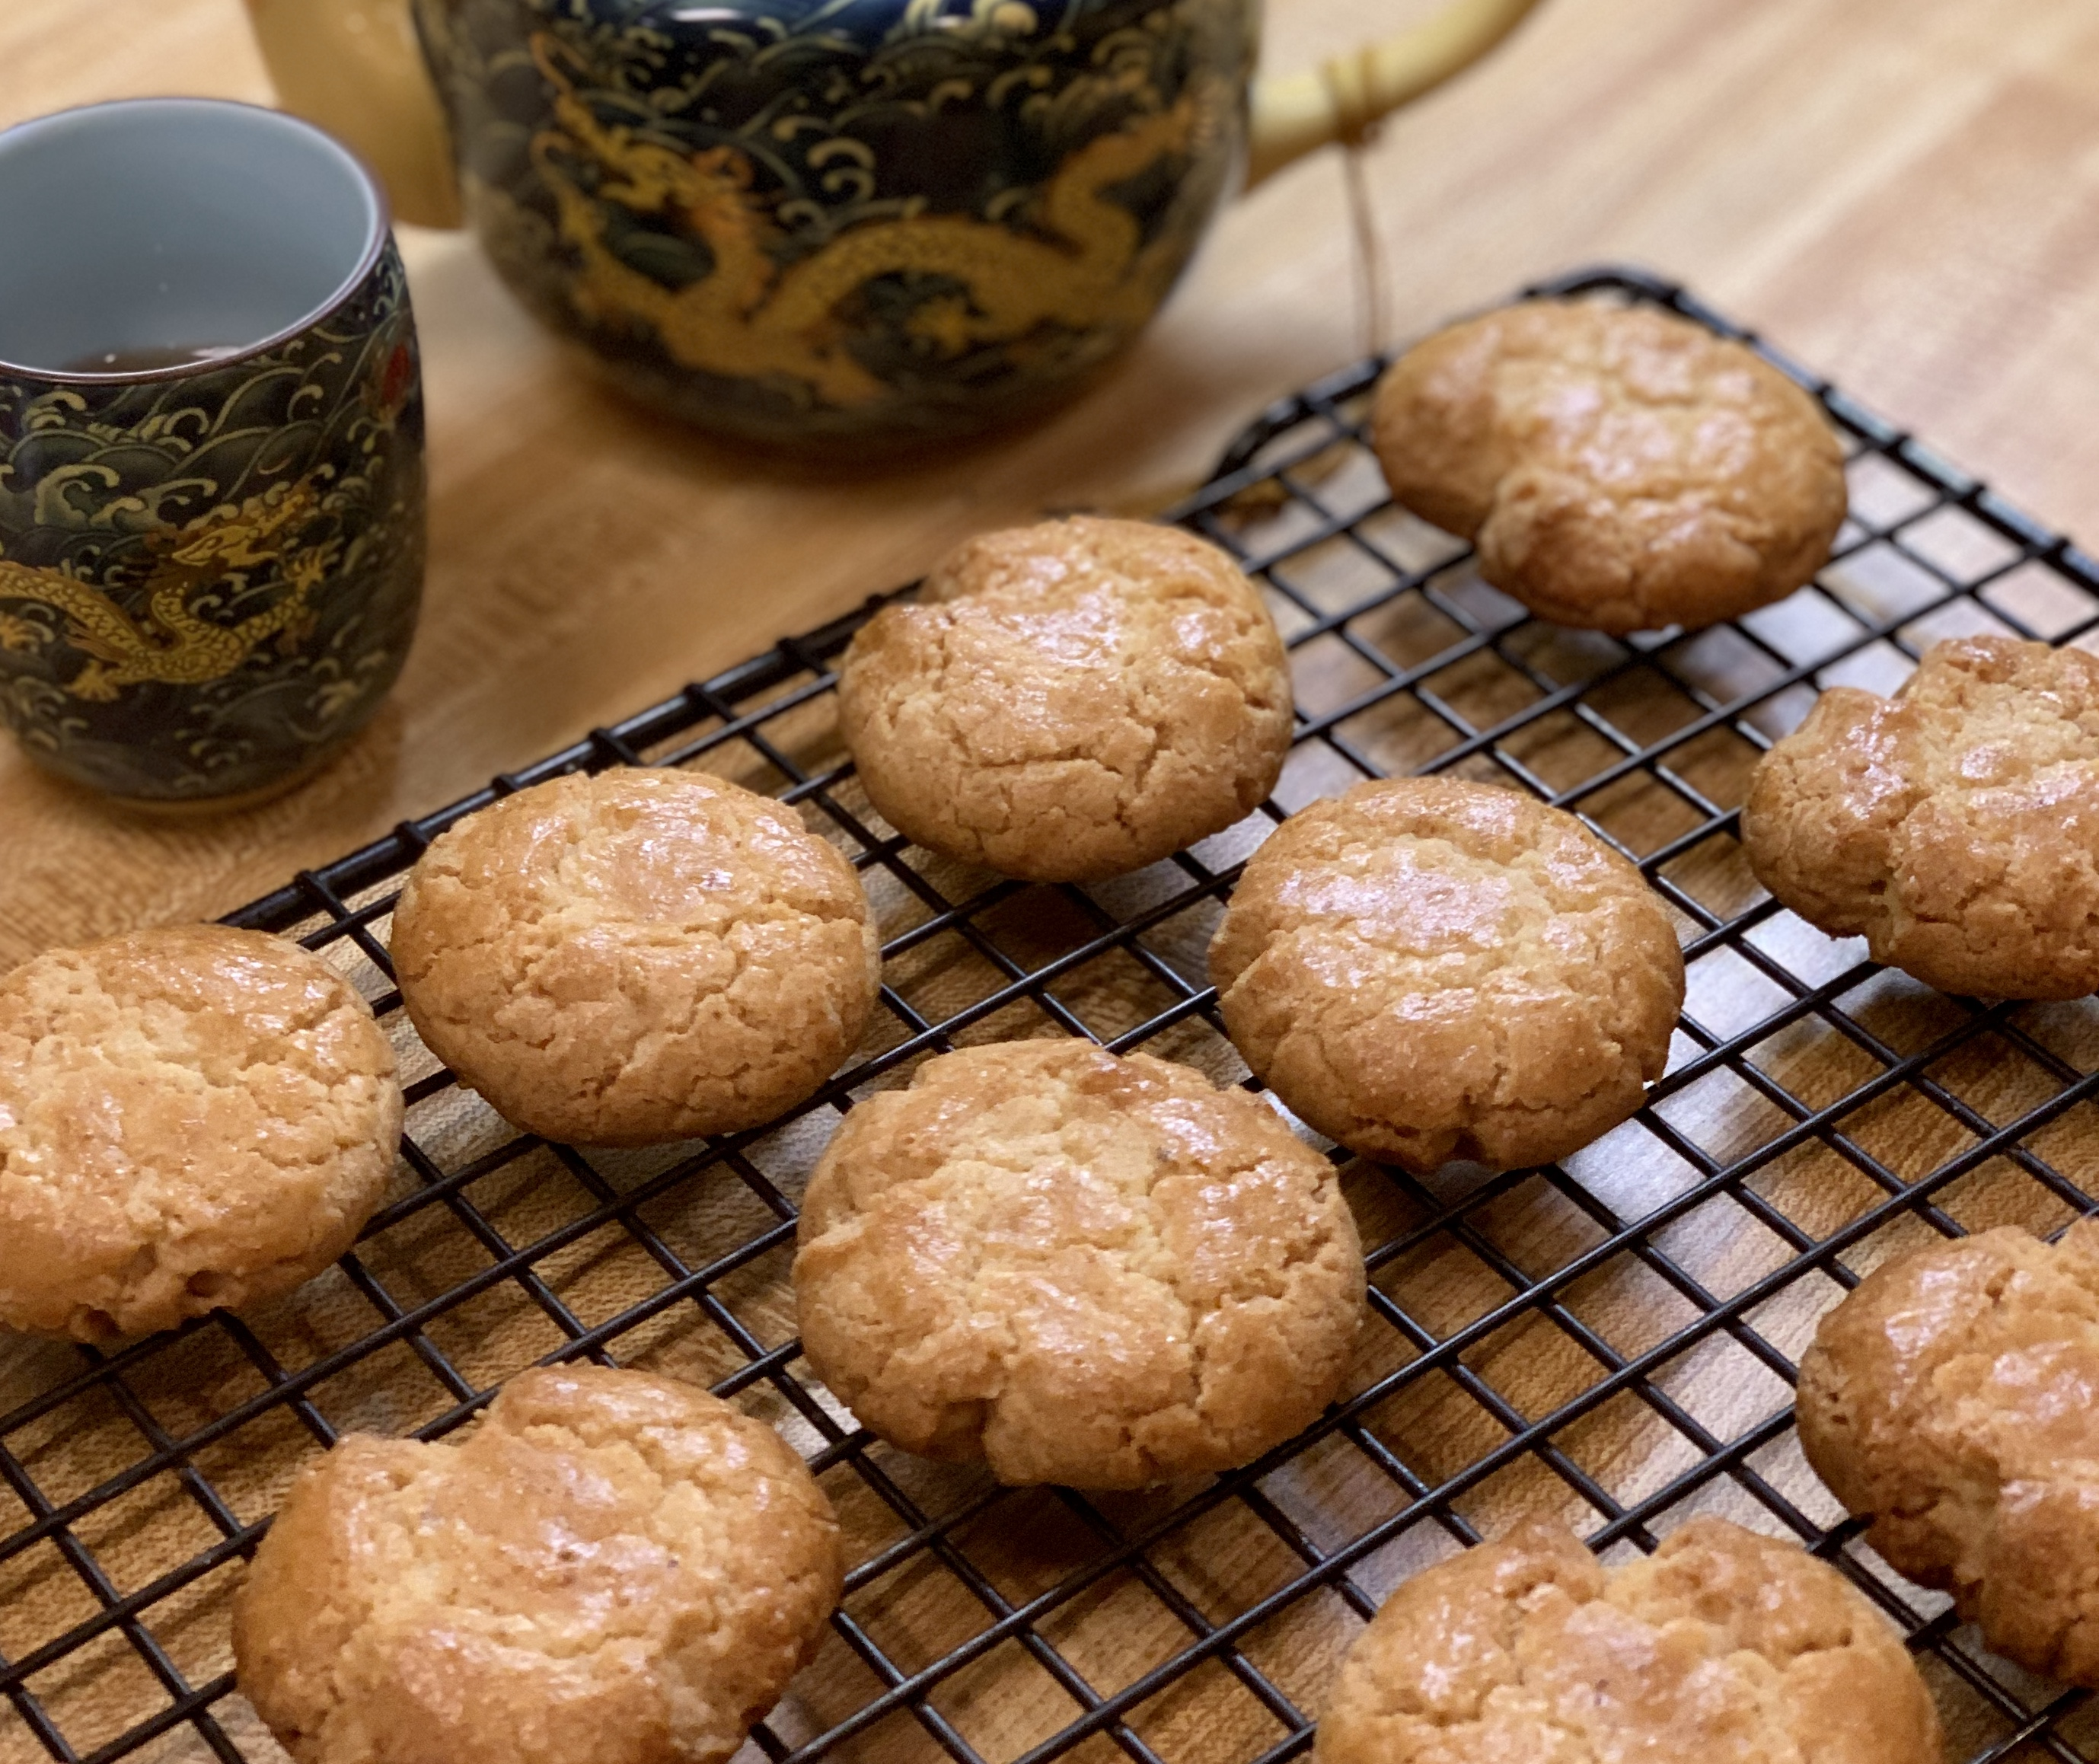 Chinese Walnut Cookies核桃酥hé táo sū